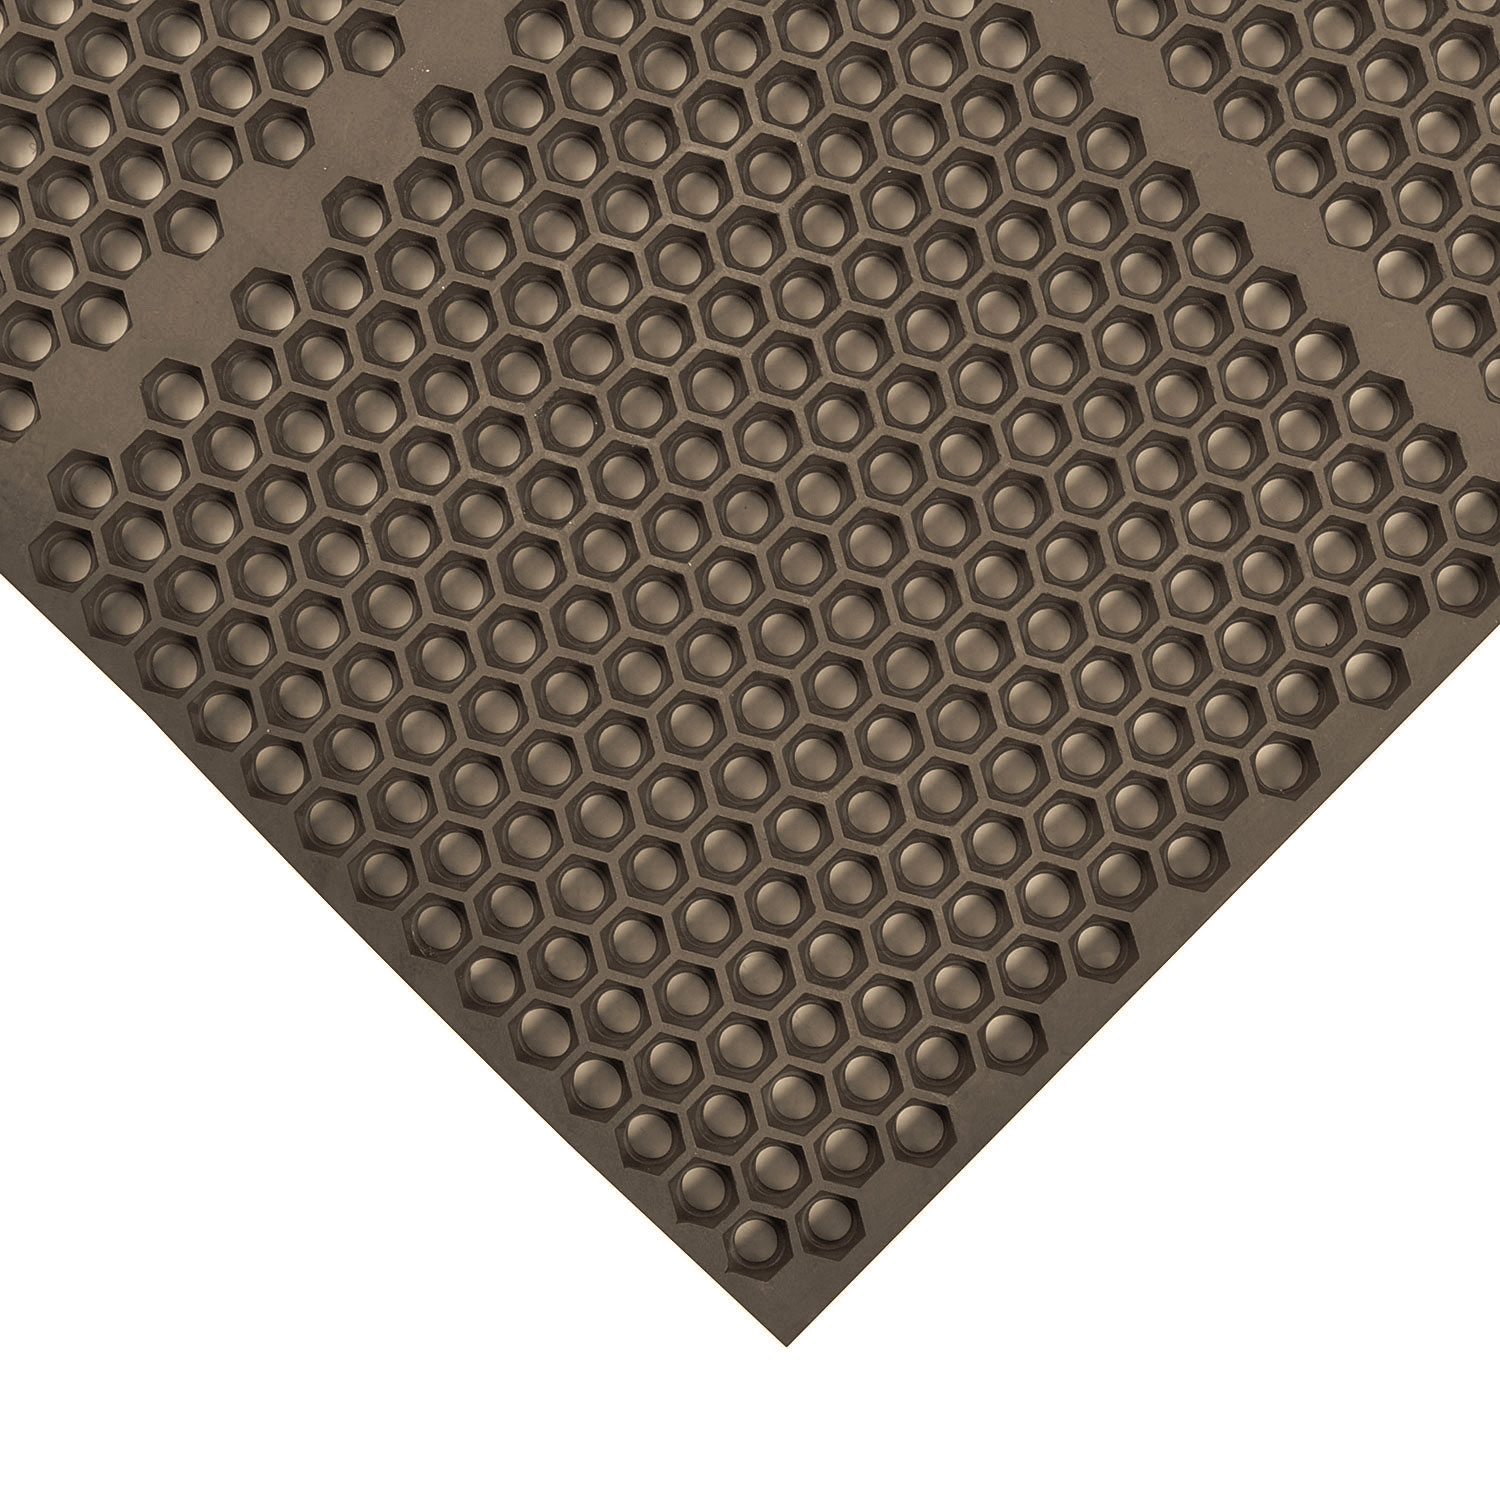 Notrax 406181 Optimat Grease-Resistant Floor Mat, 36 x 72 in, 1/2 in Thick, Brown